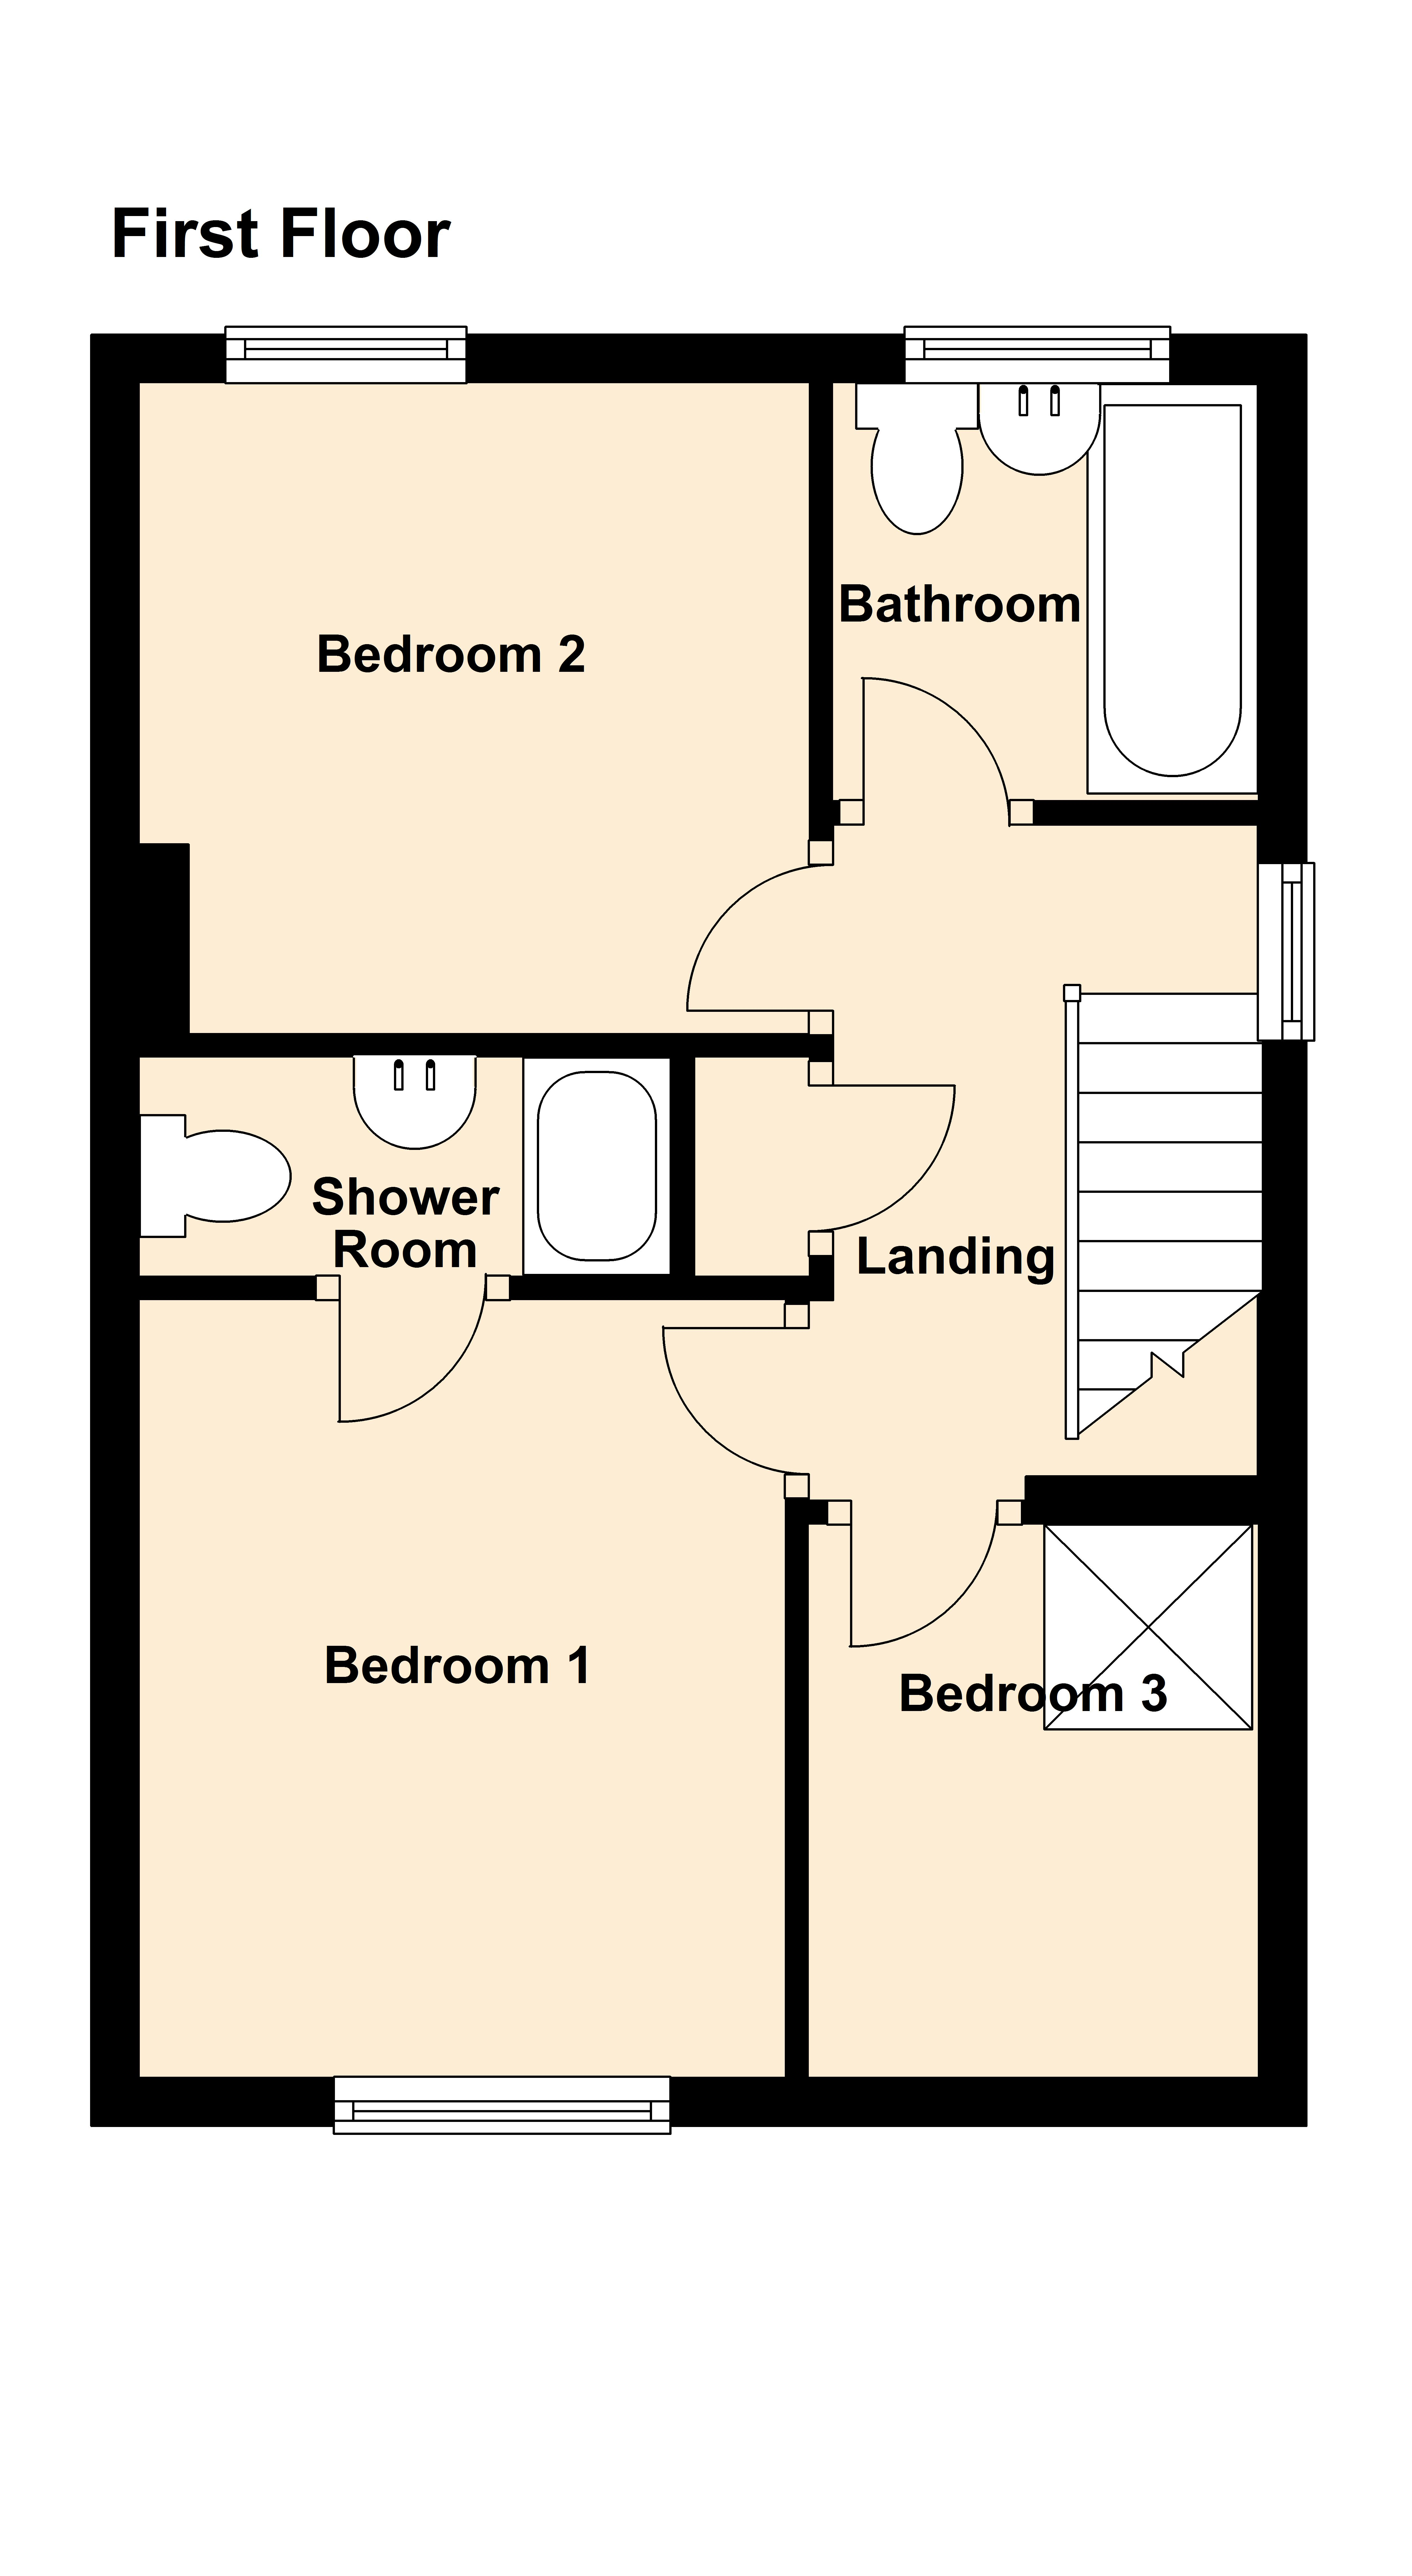 Estate agent floor plans estate agent floor plan software for Floor plans for estate agents